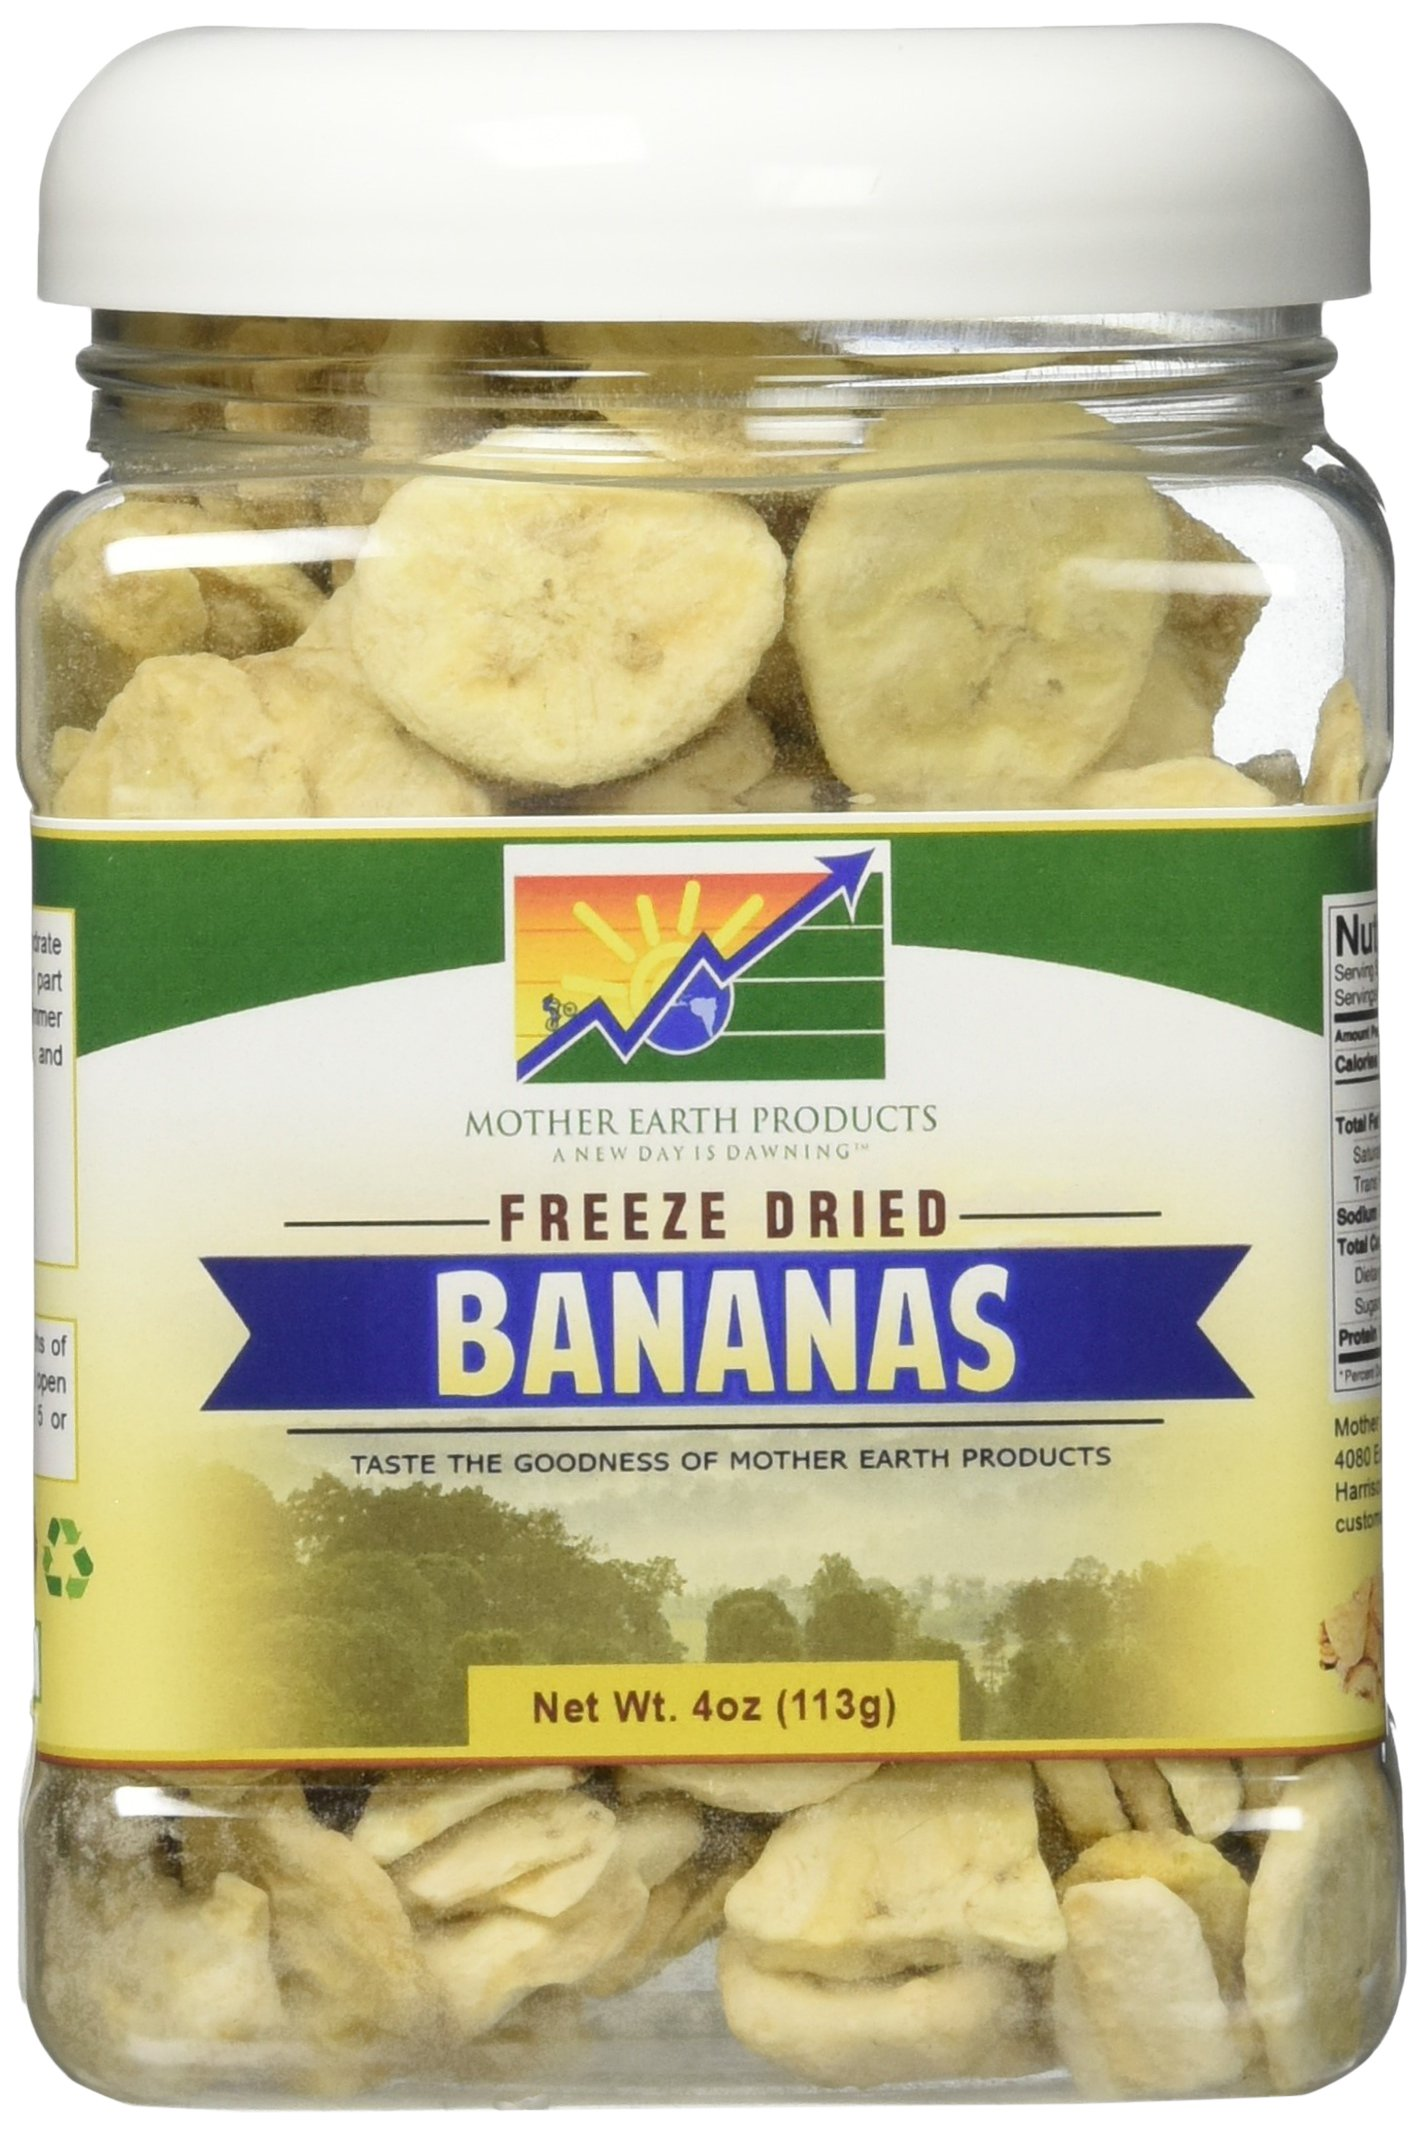 Mother Earth Products Freeze Dried Bananas, Quart Jar by Mother Earth Products (Image #1)